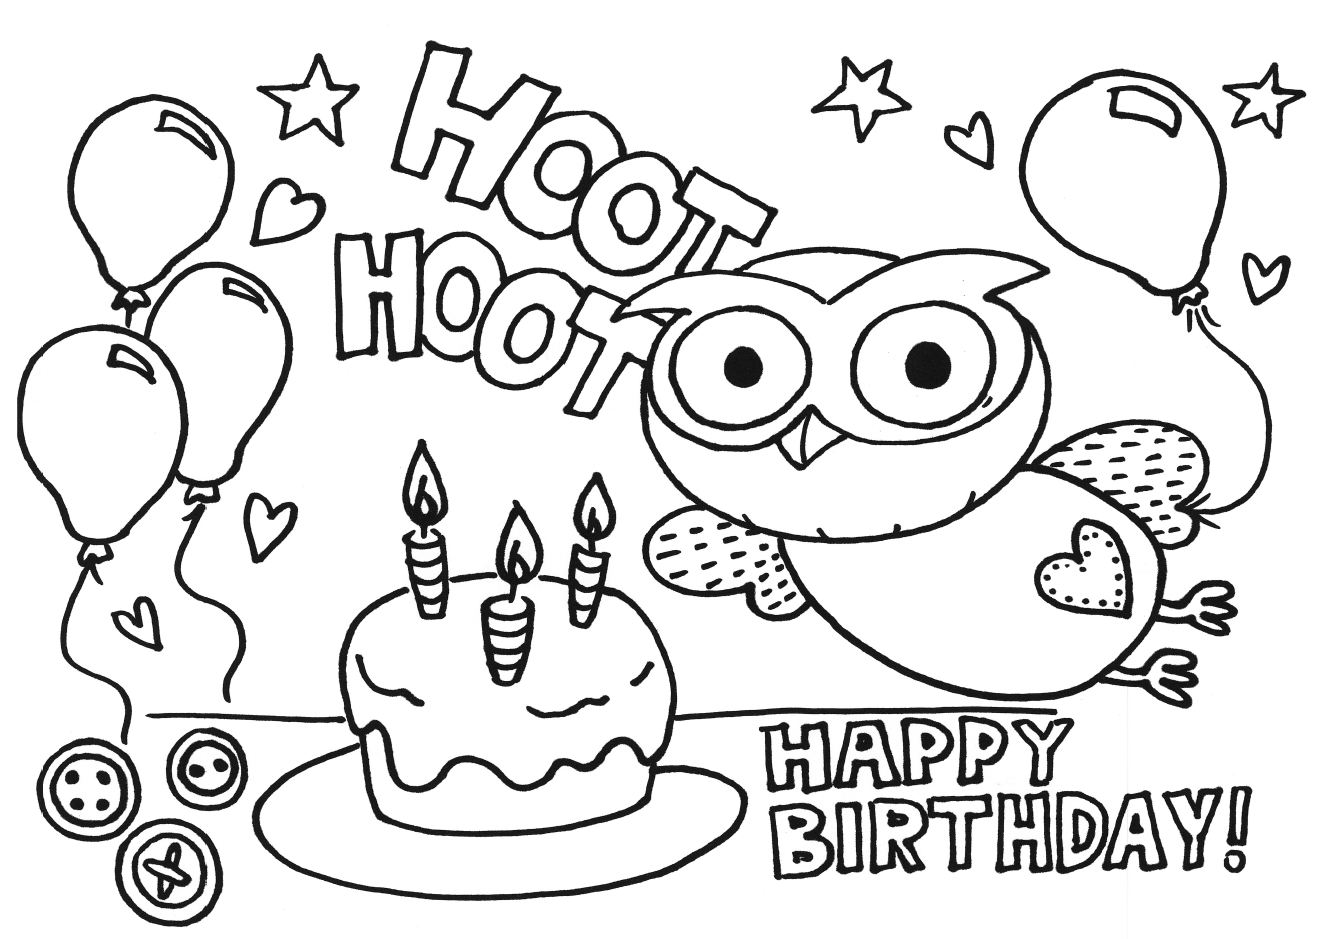 Printable Happy Birthday Coloring Pages Coloring Me Birthday Coloring Pages For Printable